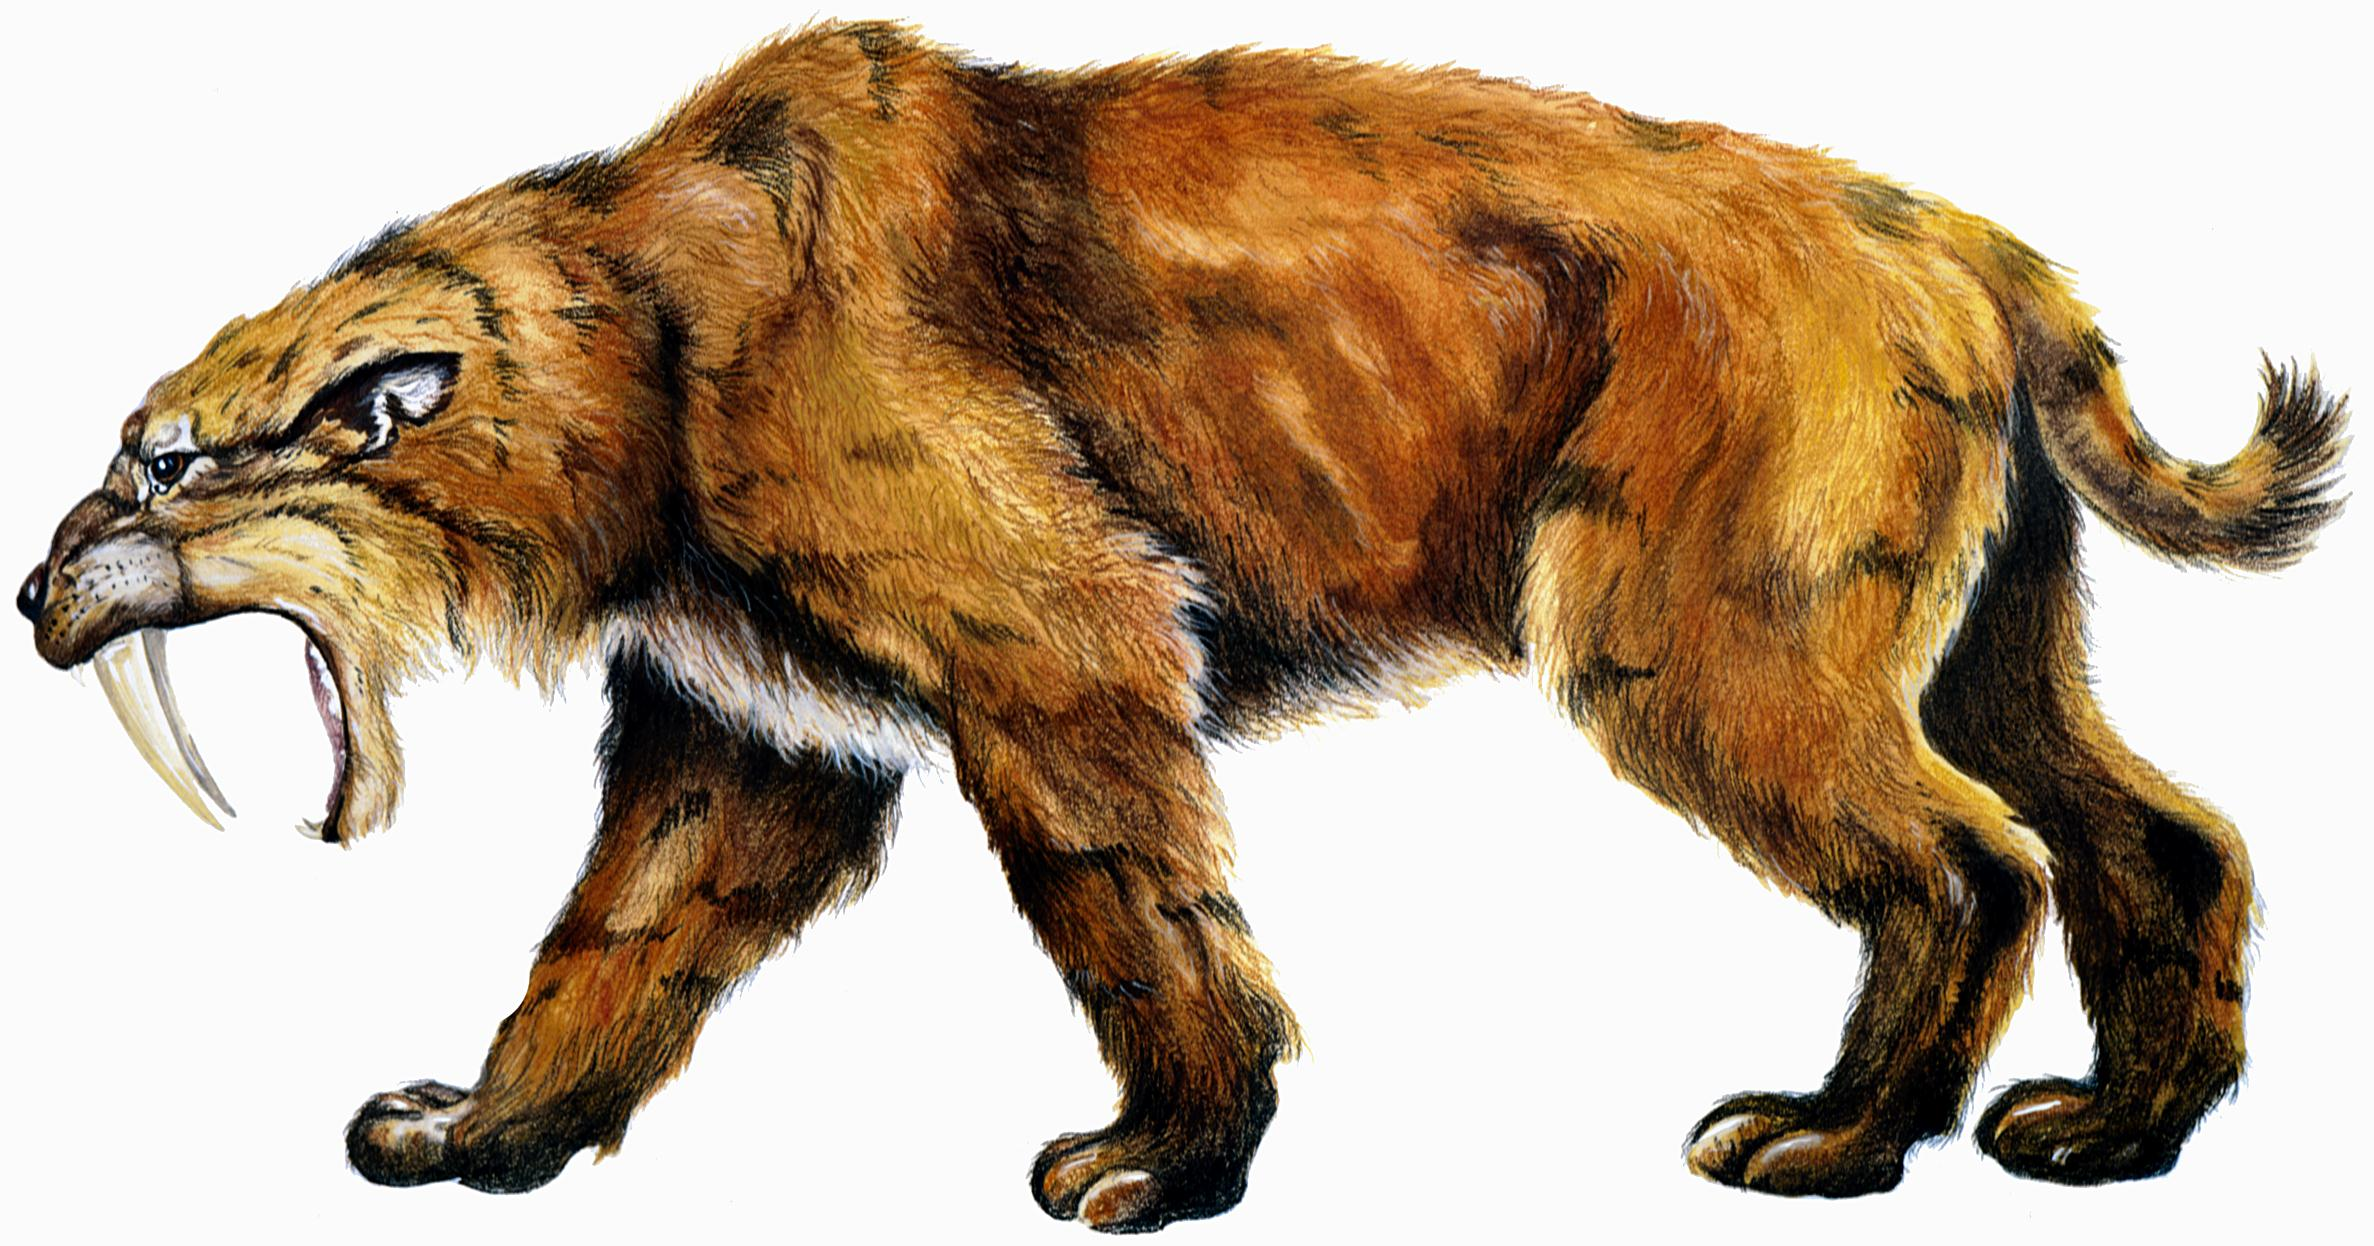 Saber-toothed Cats | Indiana Geological & Water Survey